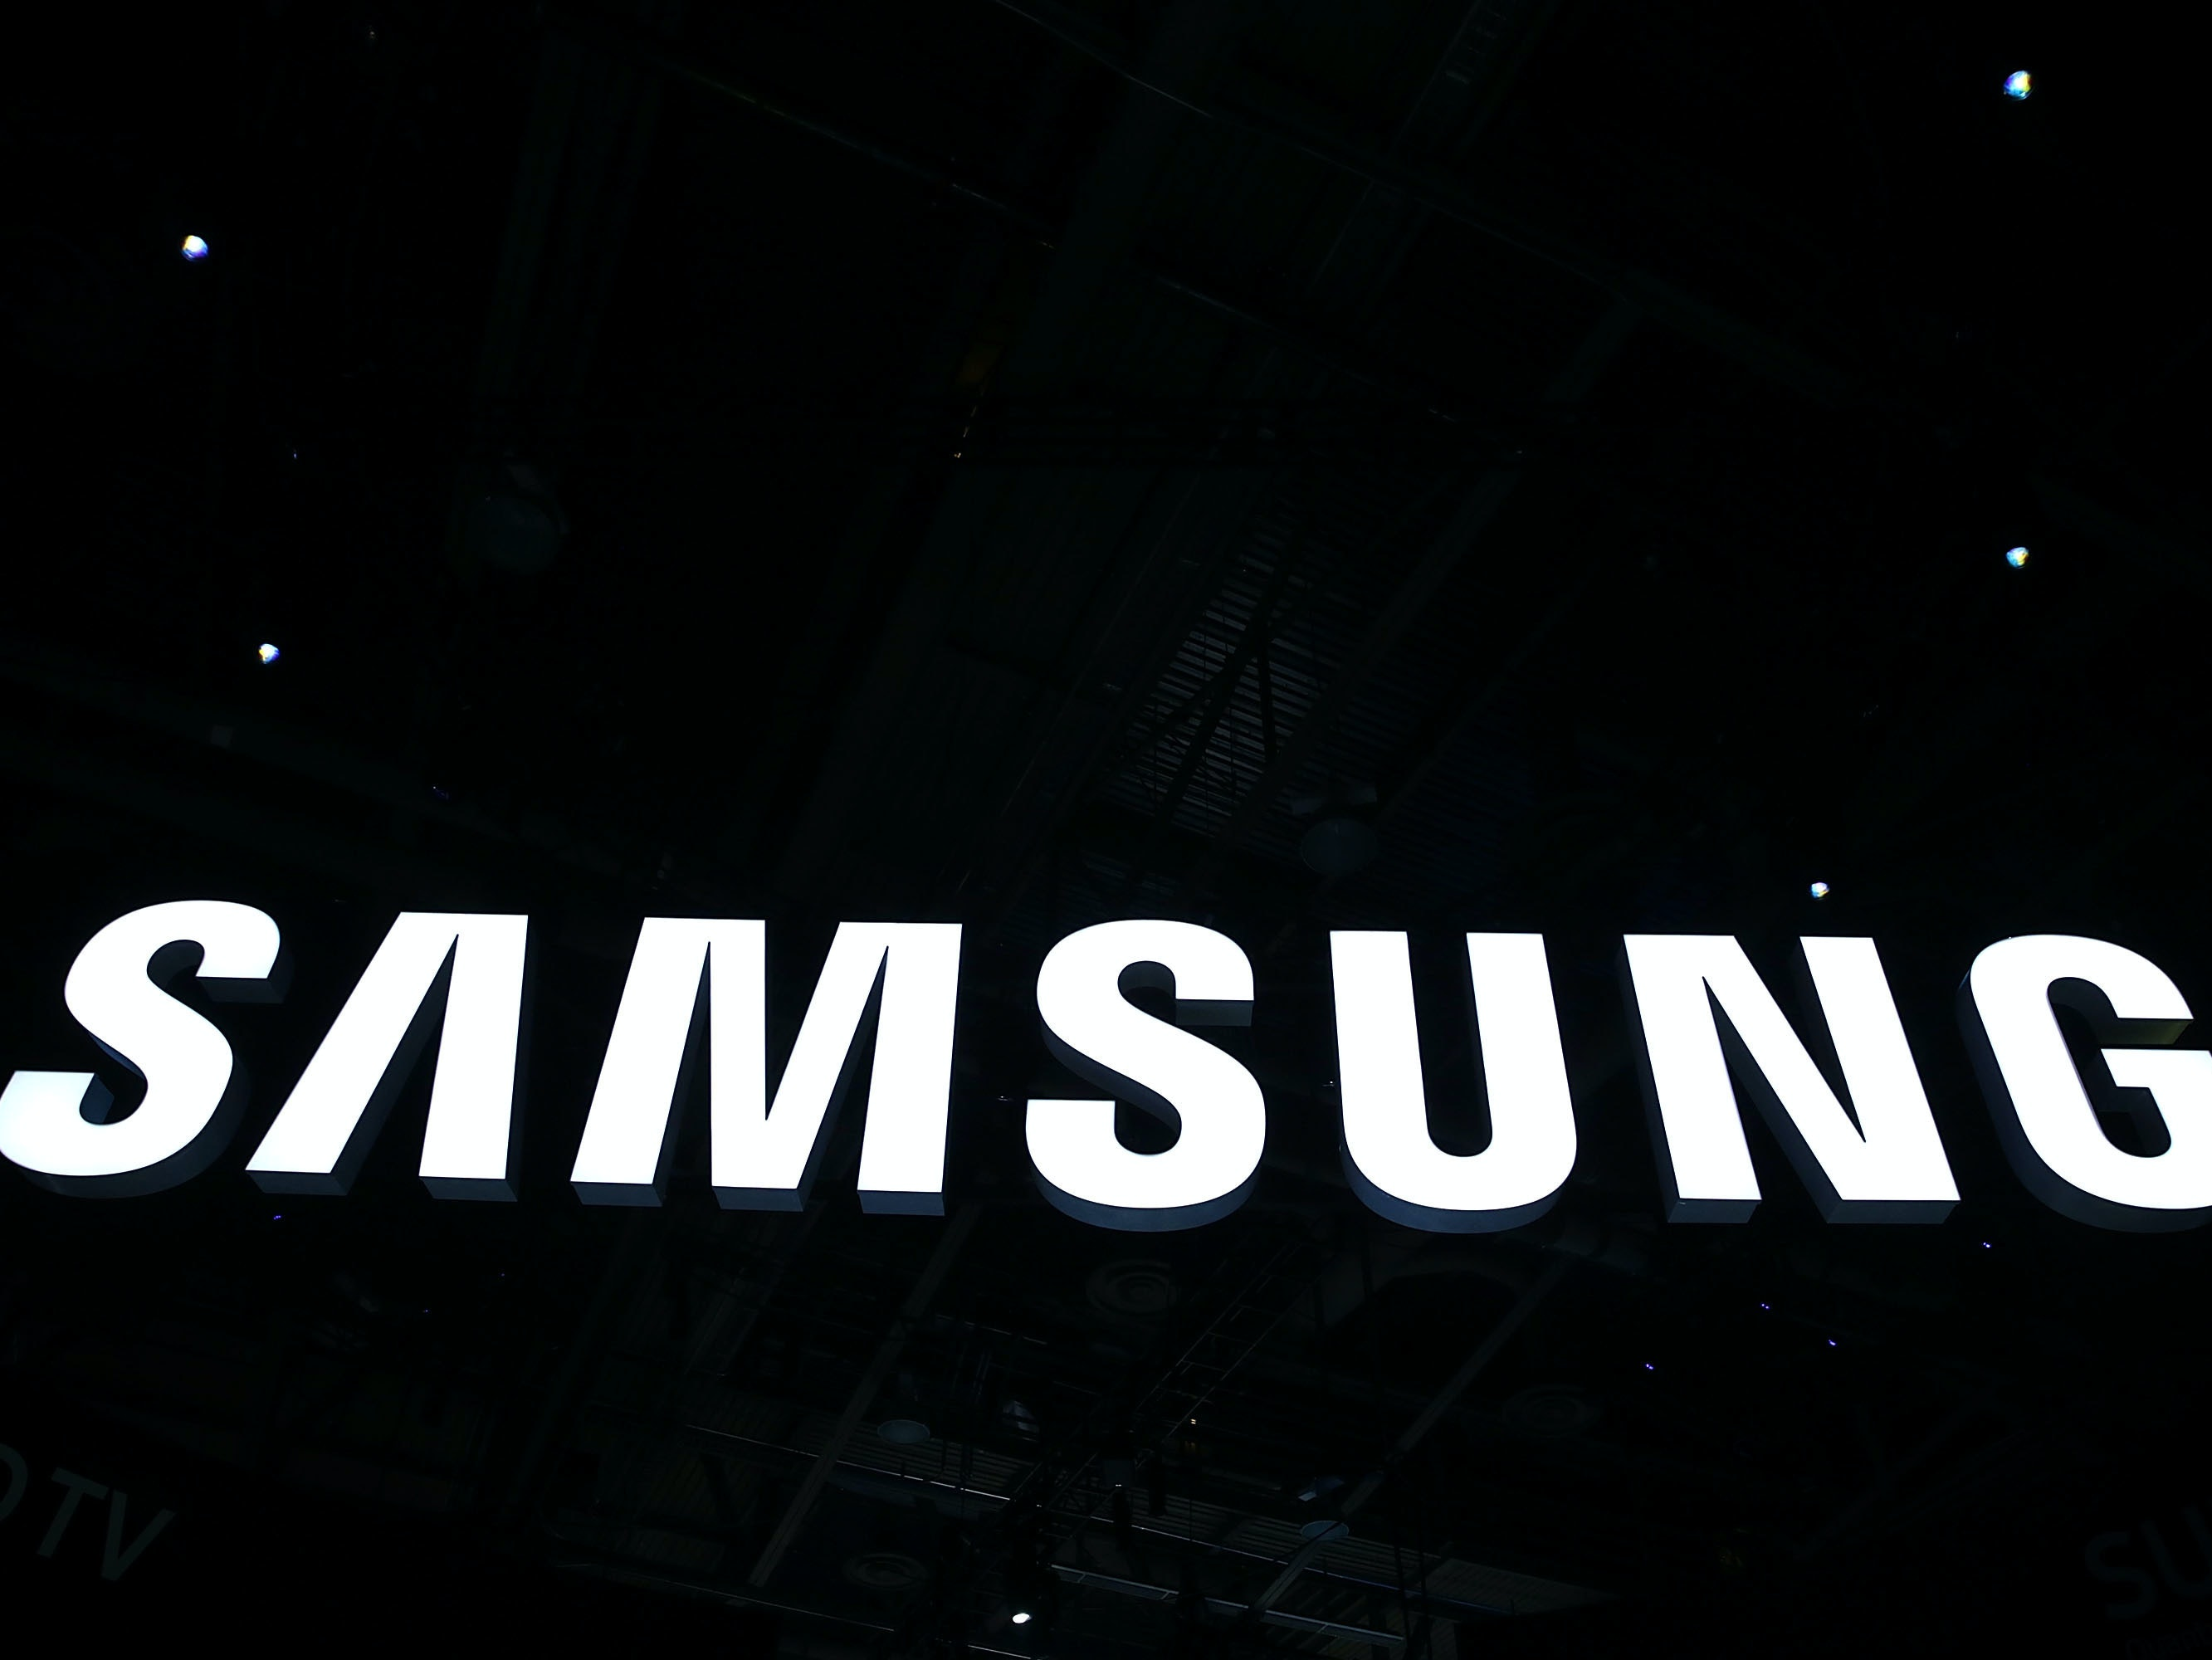 LAS VEGAS, NV - JANUARY 06:  The Samsung logo is seen at CES 2016 at the Las Vegas Convention Center on January 6, 2016 in Las Vegas, Nevada. CES, the world's largest annual consumer technology trade show, runs through January 9 and is expected to feature 3,600 exhibitors showing off their latest products and services to more than 150,000 attendees.  (Photo by Alex Wong/Getty Images)